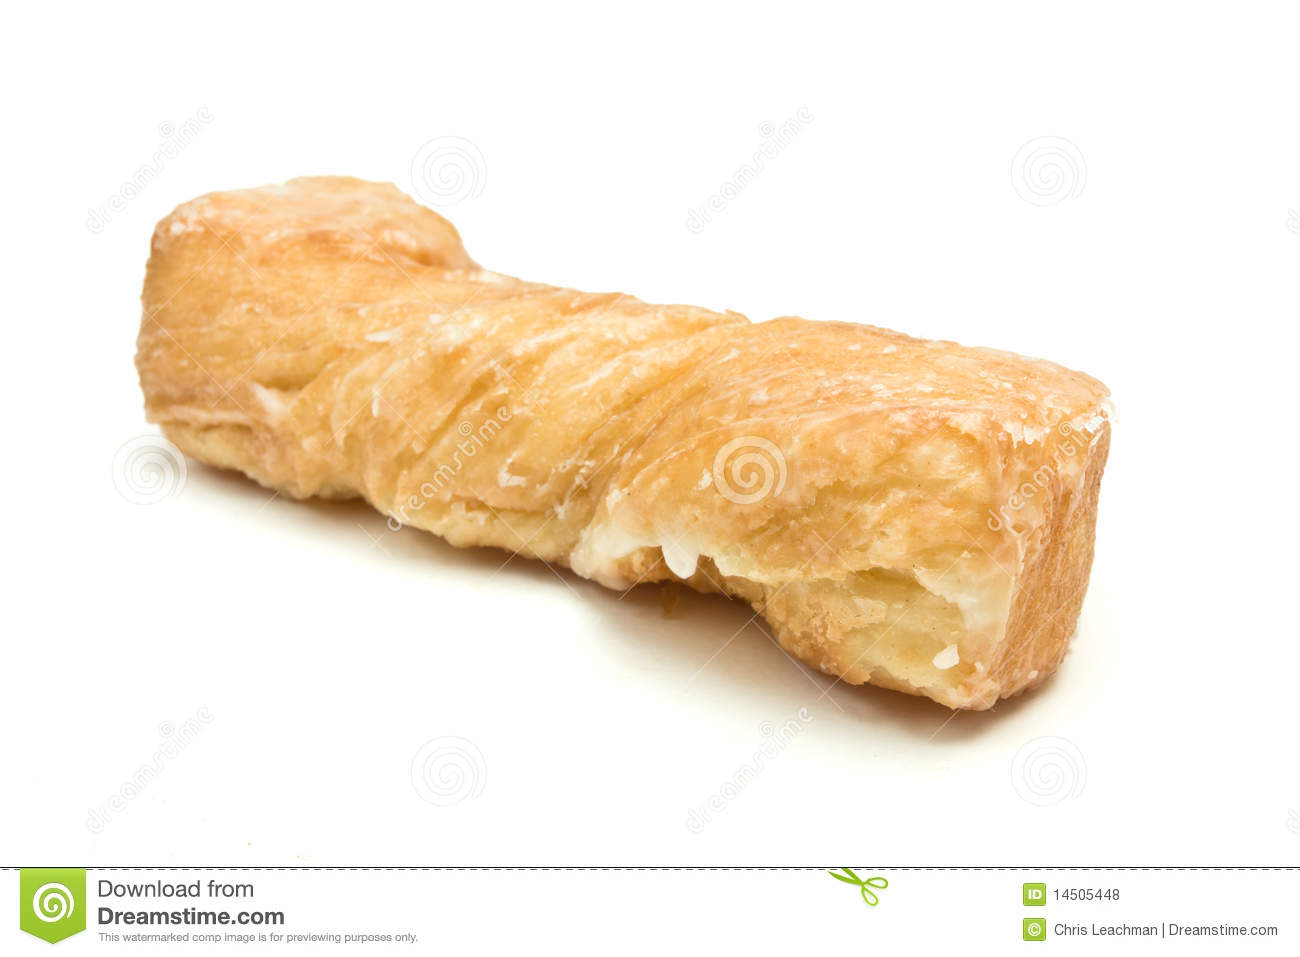 Yum Yum sugar coated Pastry isolated against white background.